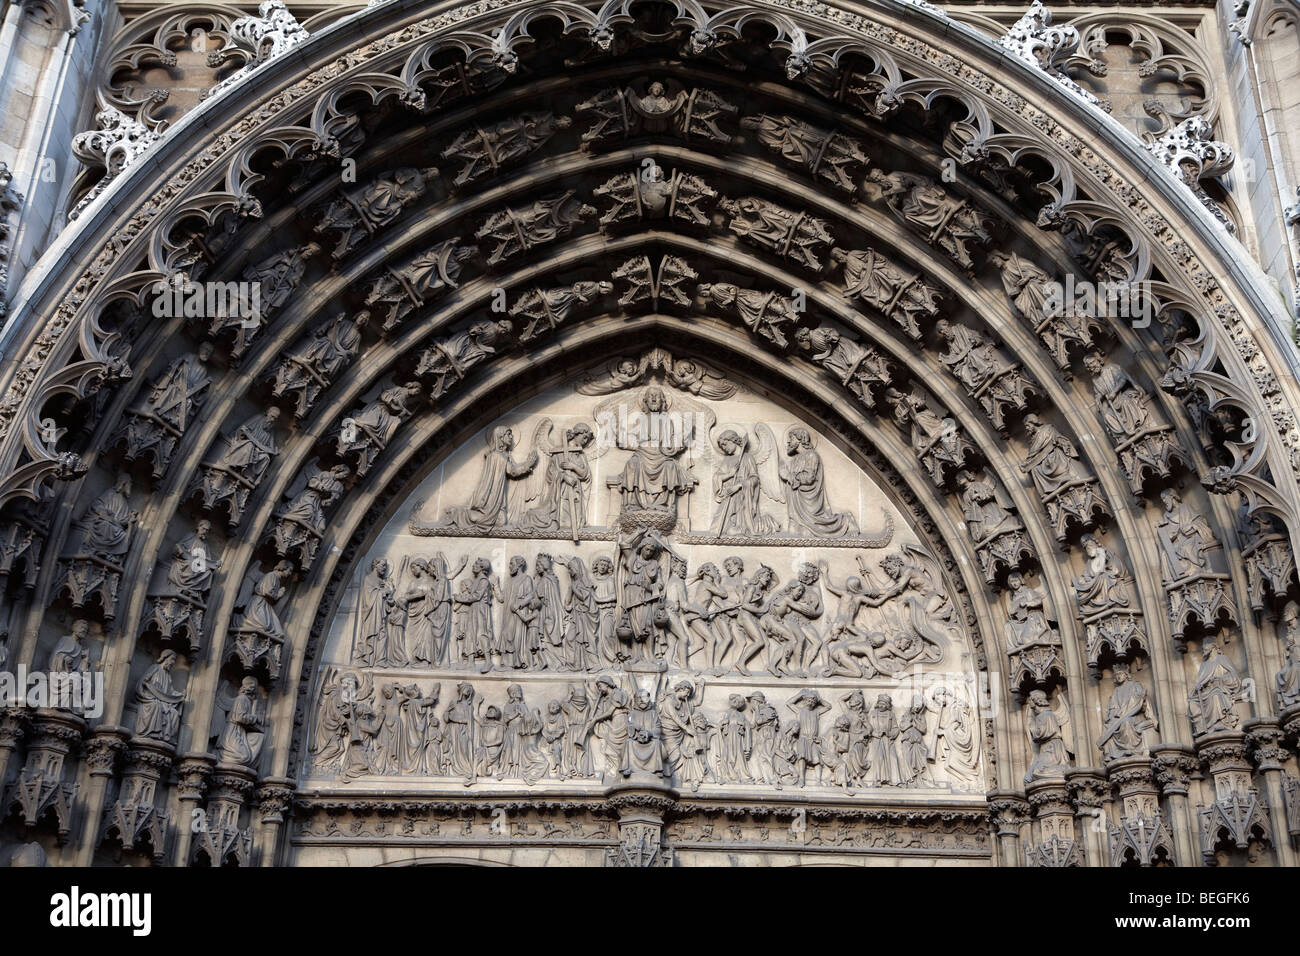 Carved doorway of the Cathedral showing the path to Heaven or Hell. - Stock Image